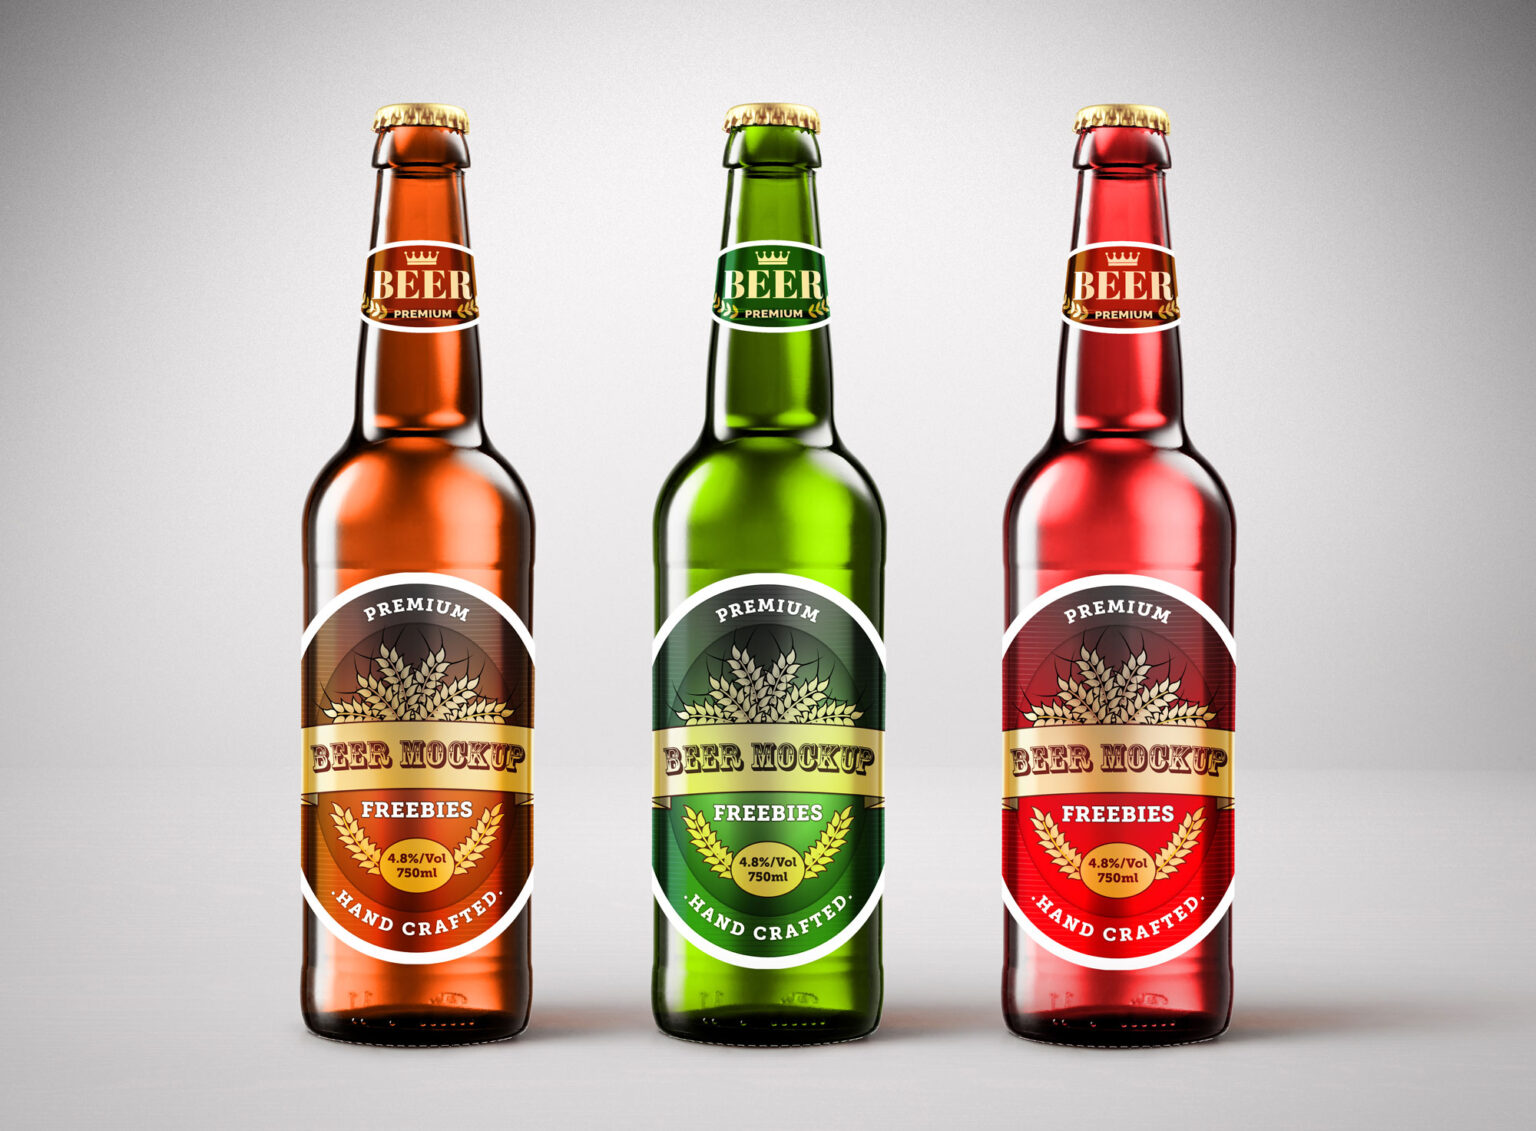 Free Download Three Colors Beer Bottle Mockup PSD, Great quality and easy to use this mockup for your awesome design project. High resolution Photoshop. 100% free!